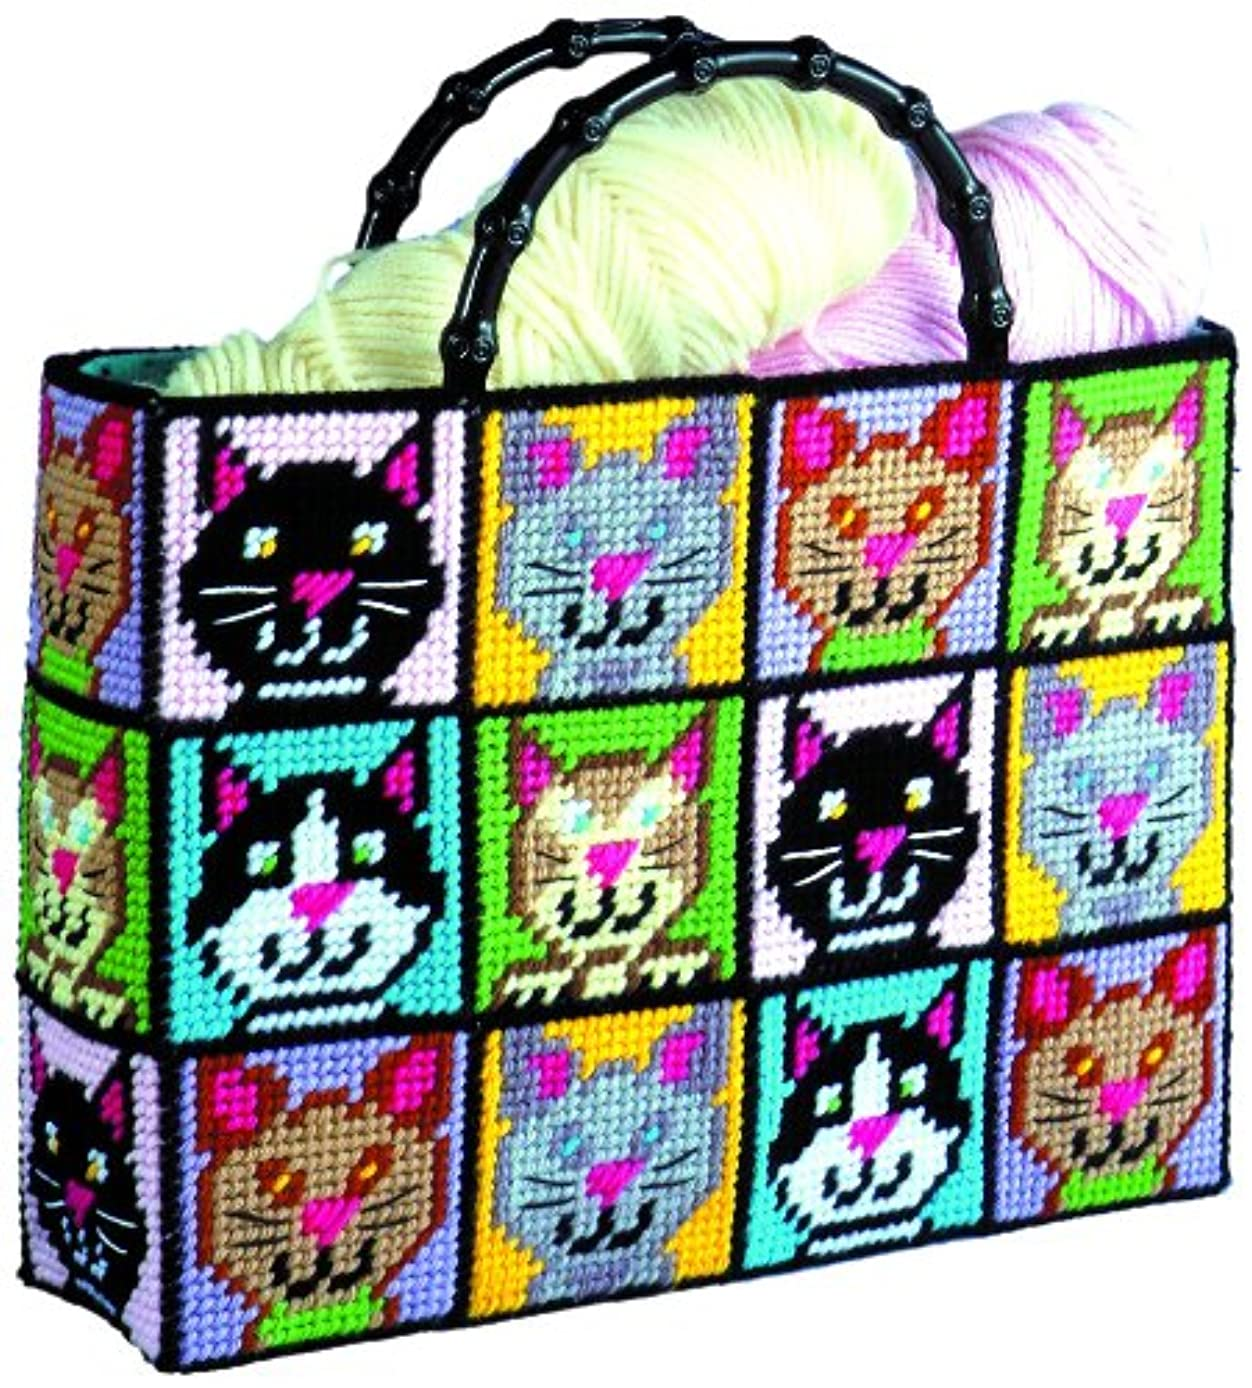 Tobin DW1826 Cat Tote Bag Plastic Canvas Kit, 12 by 13 by 9-Inch